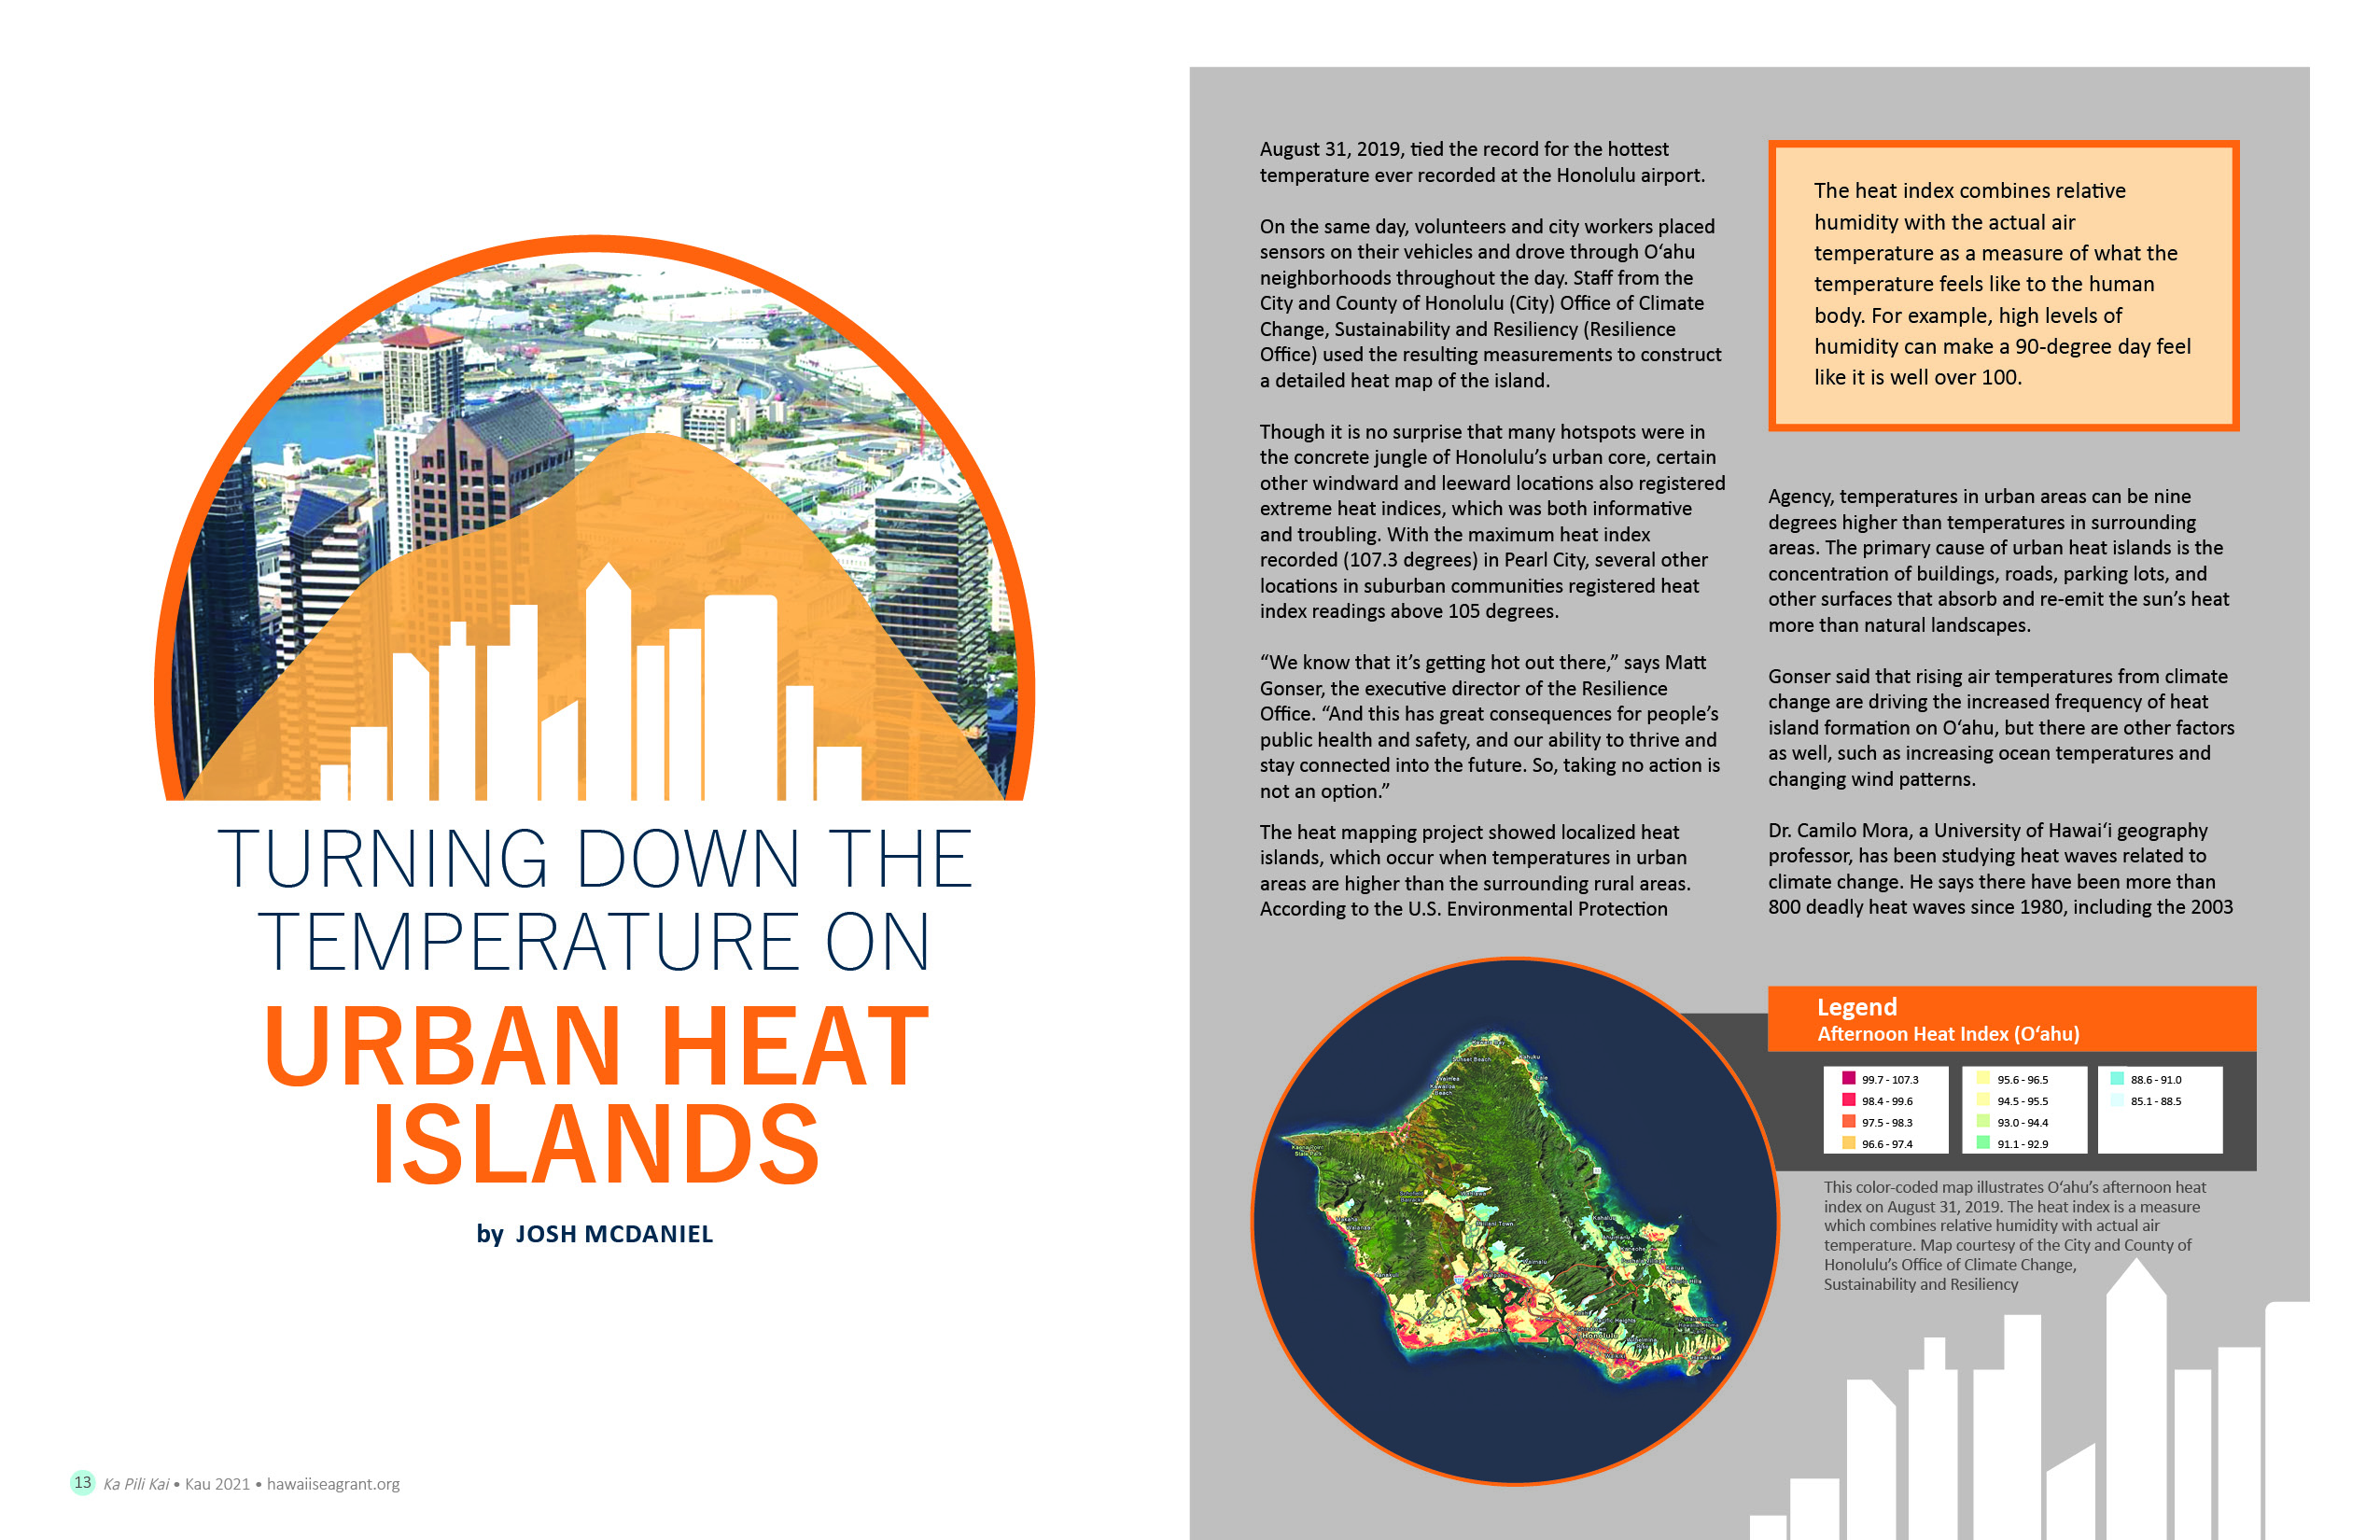 Turning Down the Temperature on Urban Heat Islands